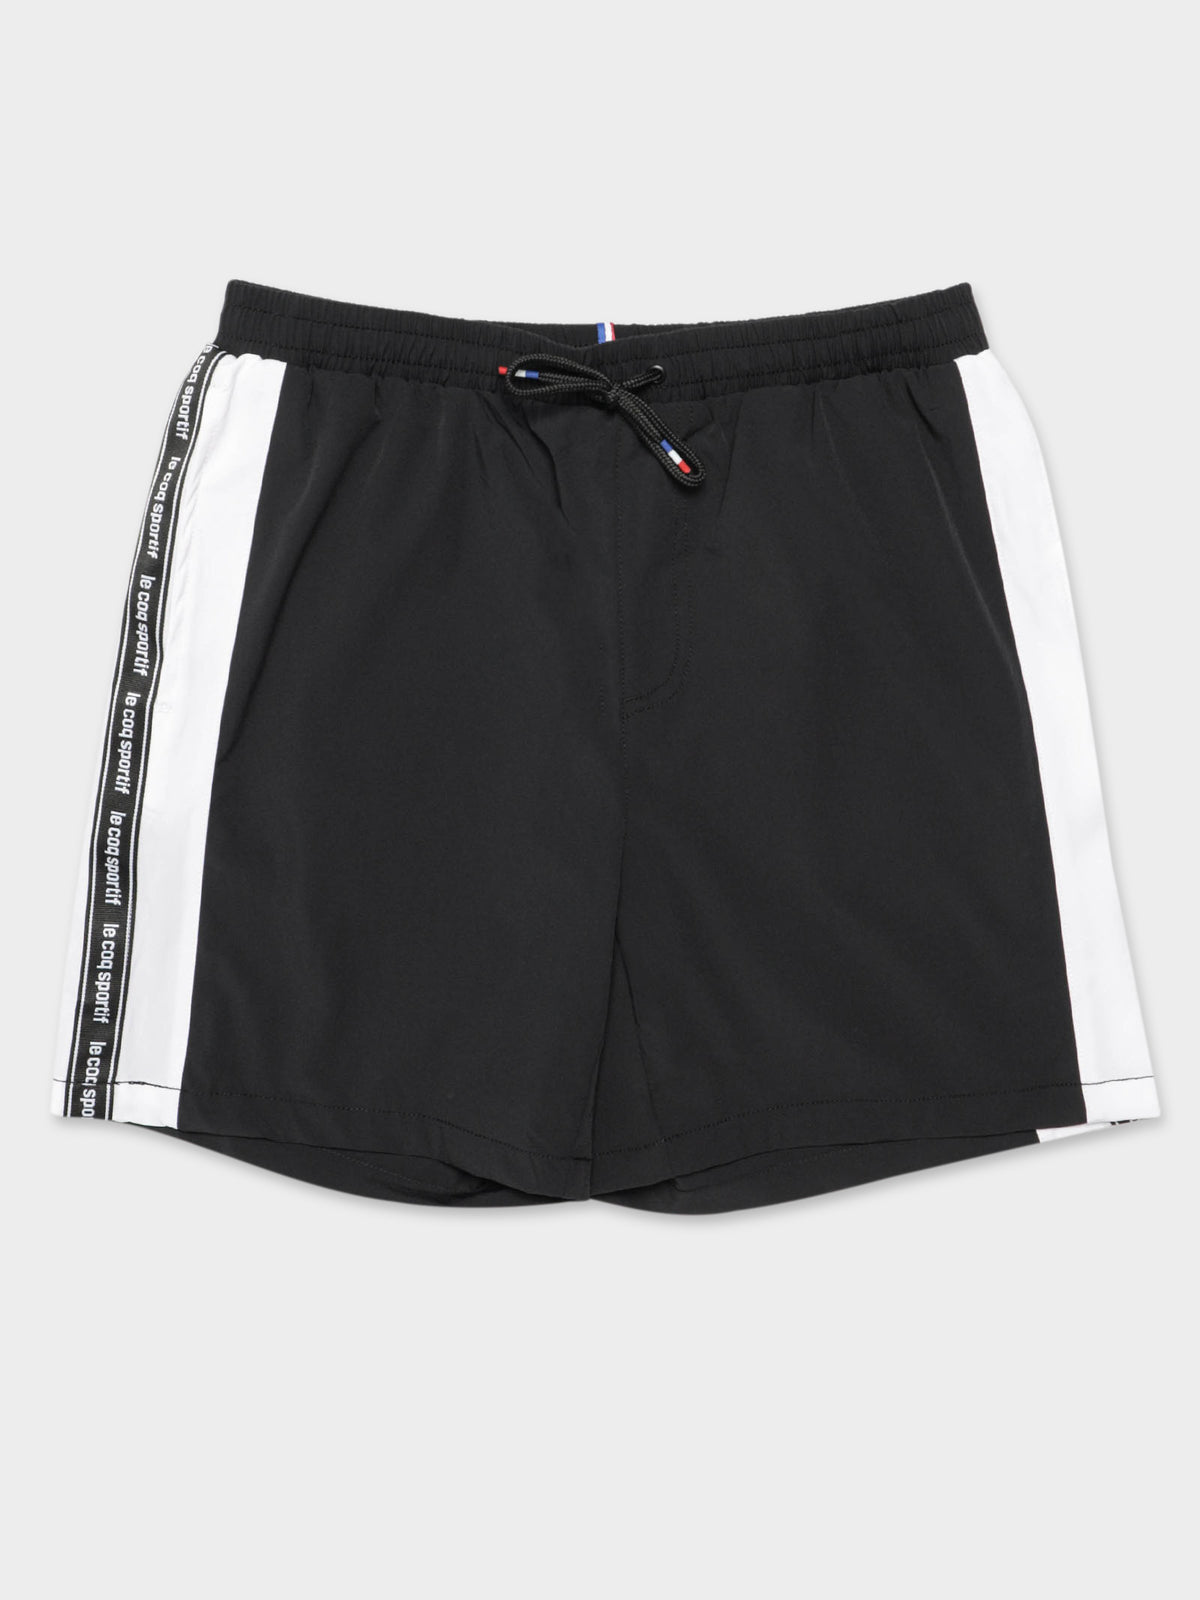 Sponsor Shorts in Black